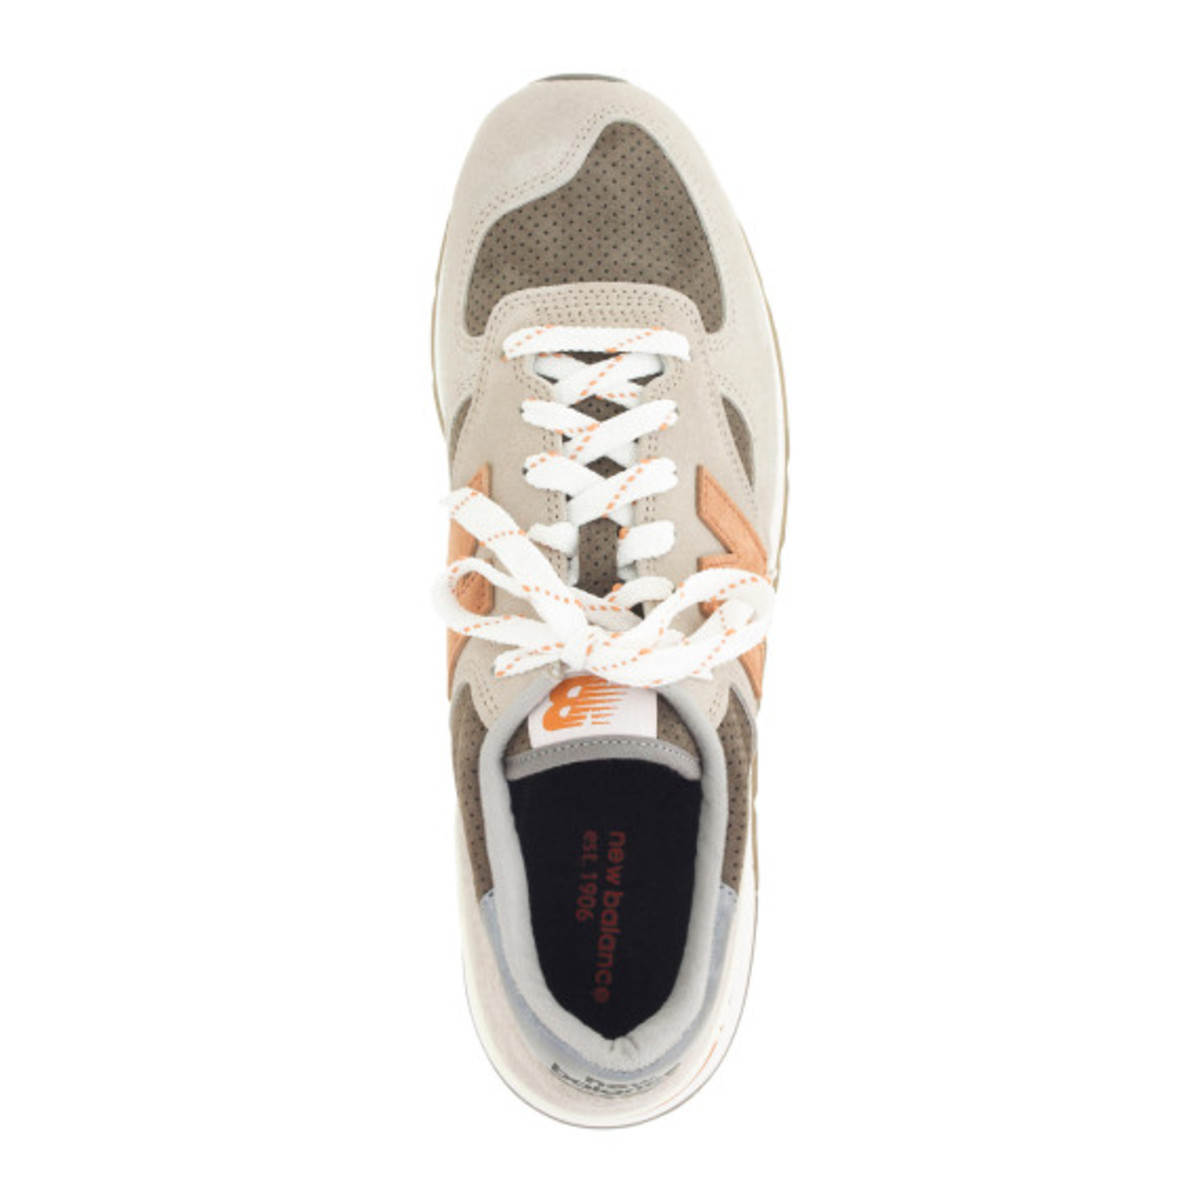 jcrew-new-balance-990-pack-available-now-03